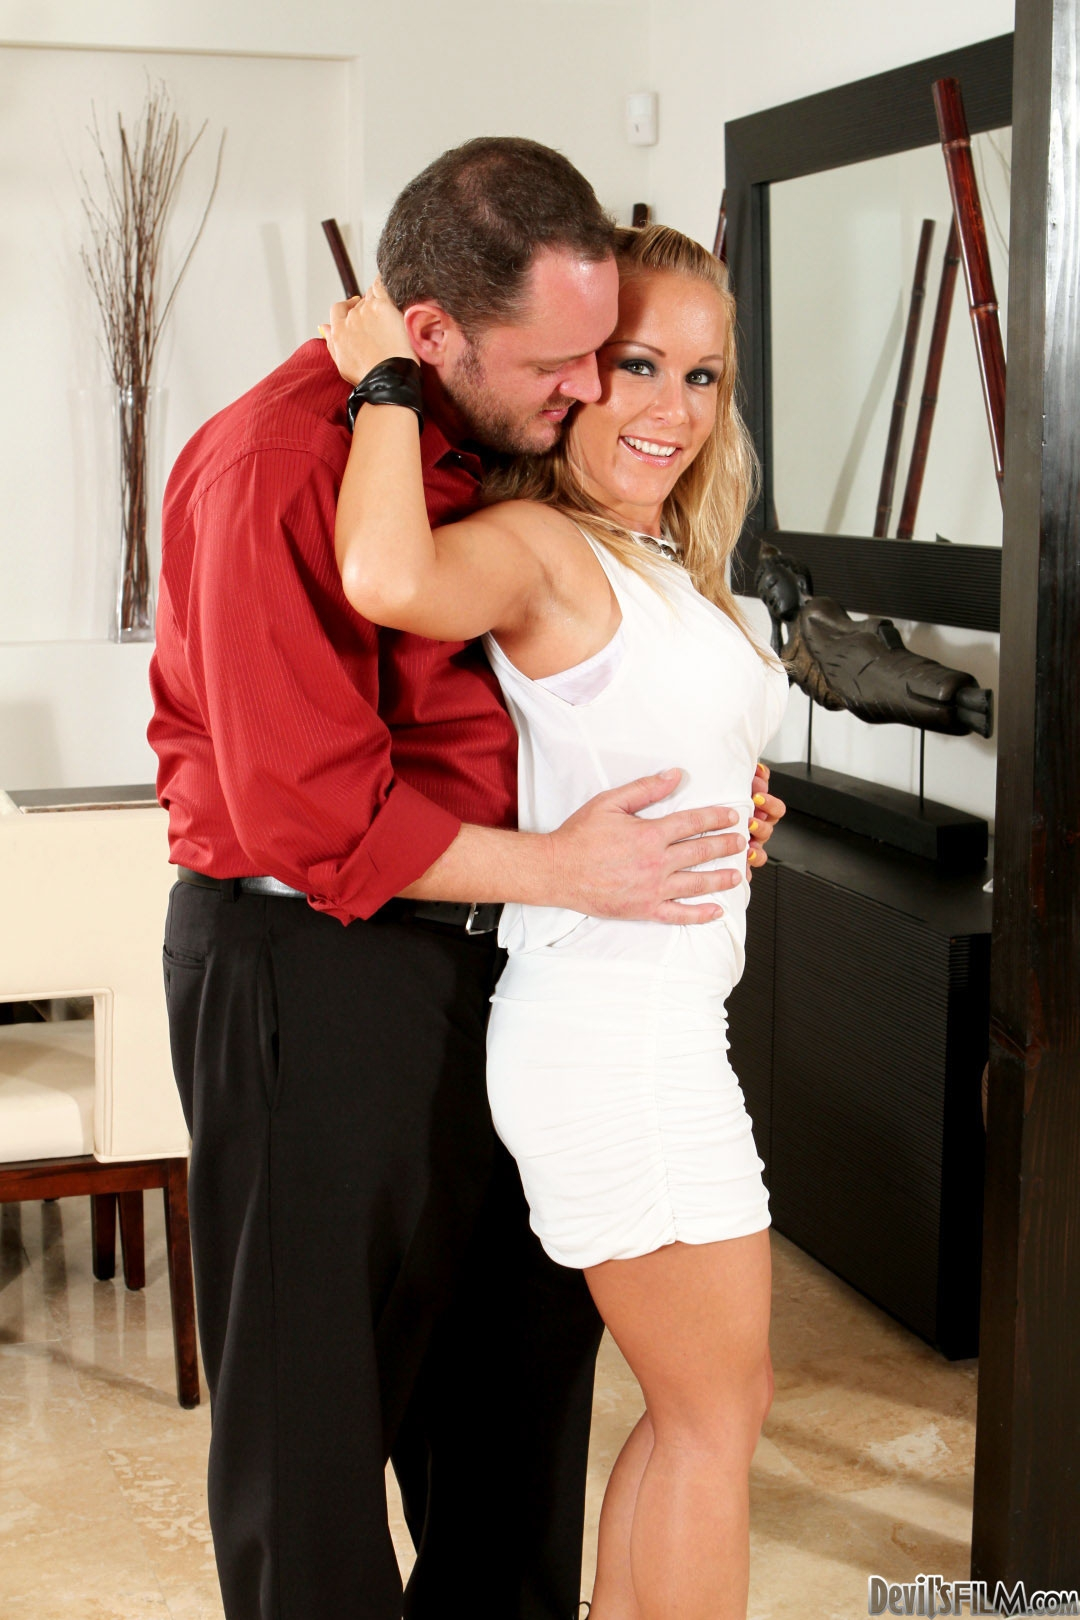 smutty massage therapist fingers a petite teen client